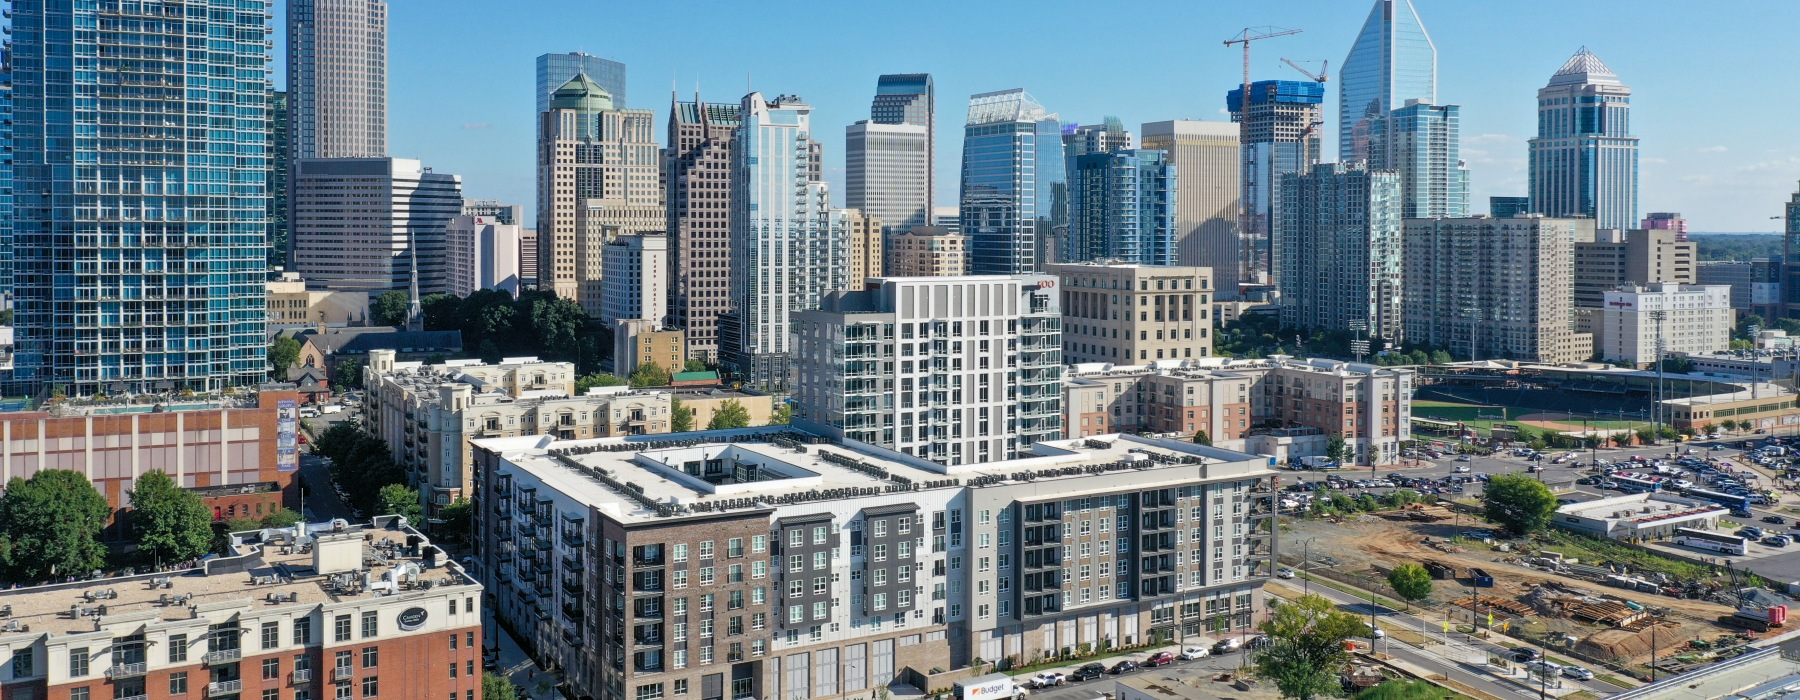 Welcome to 500 West Trade where Uptown Charlotte is in your backyard